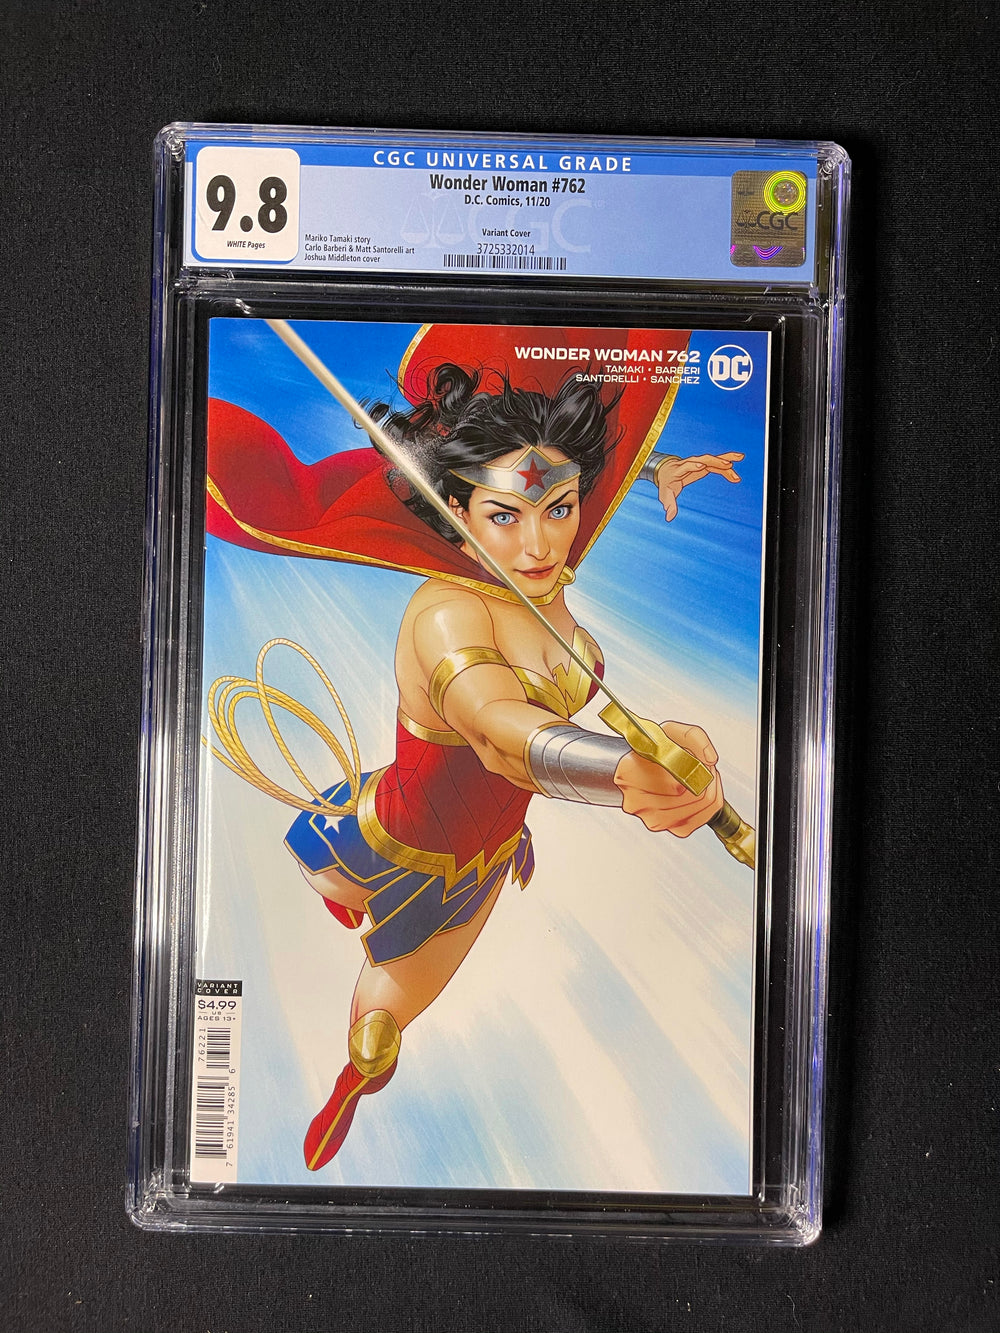 Wonder Woman 762 Variant CGC 9.8